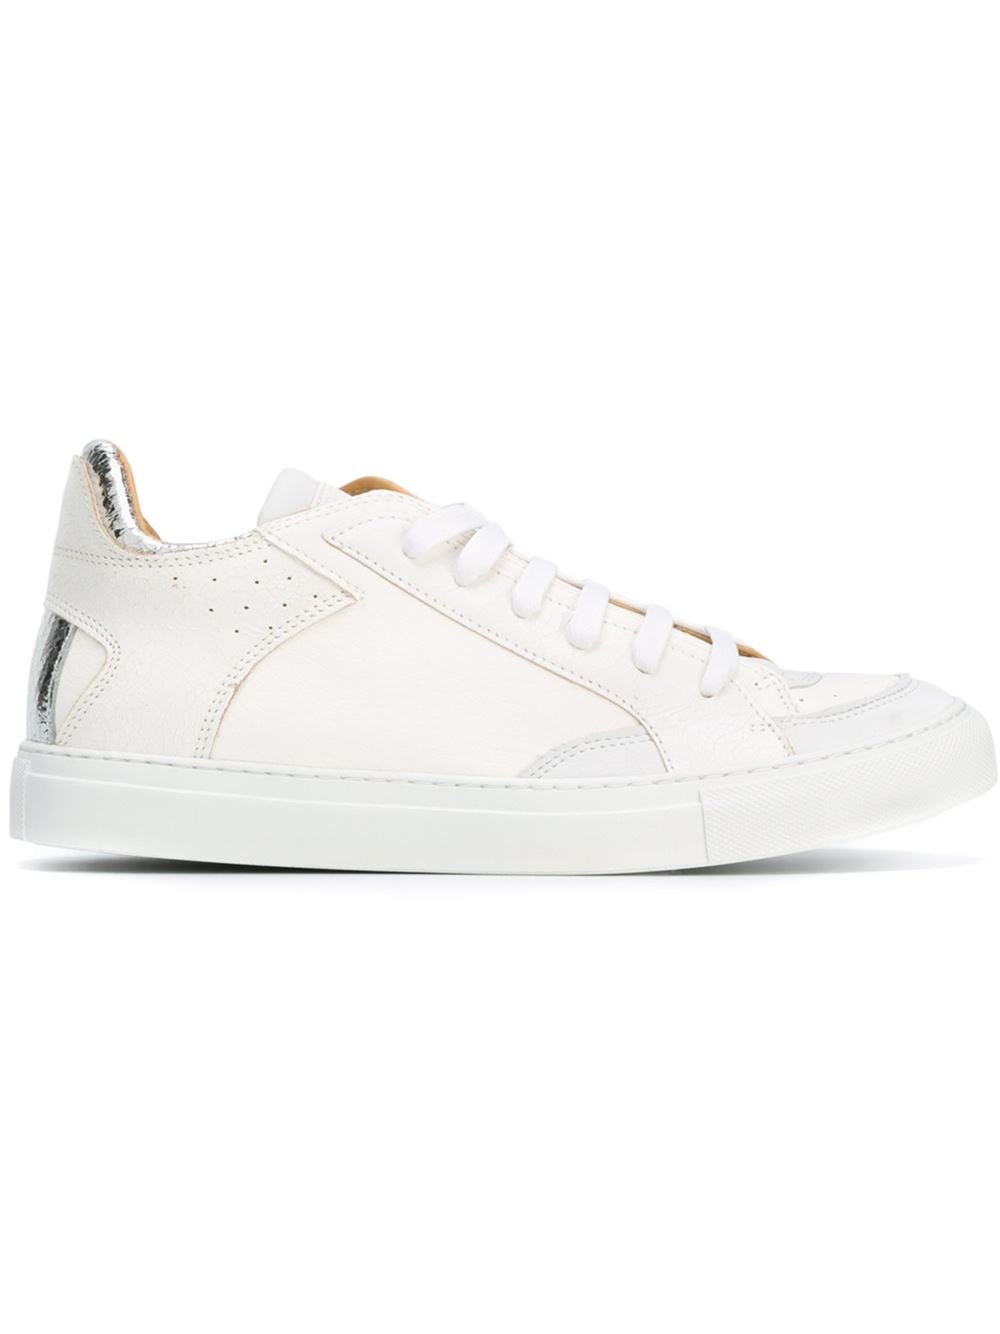 mm6 by maison martin margiela classic lo top sneakers in white lyst. Black Bedroom Furniture Sets. Home Design Ideas